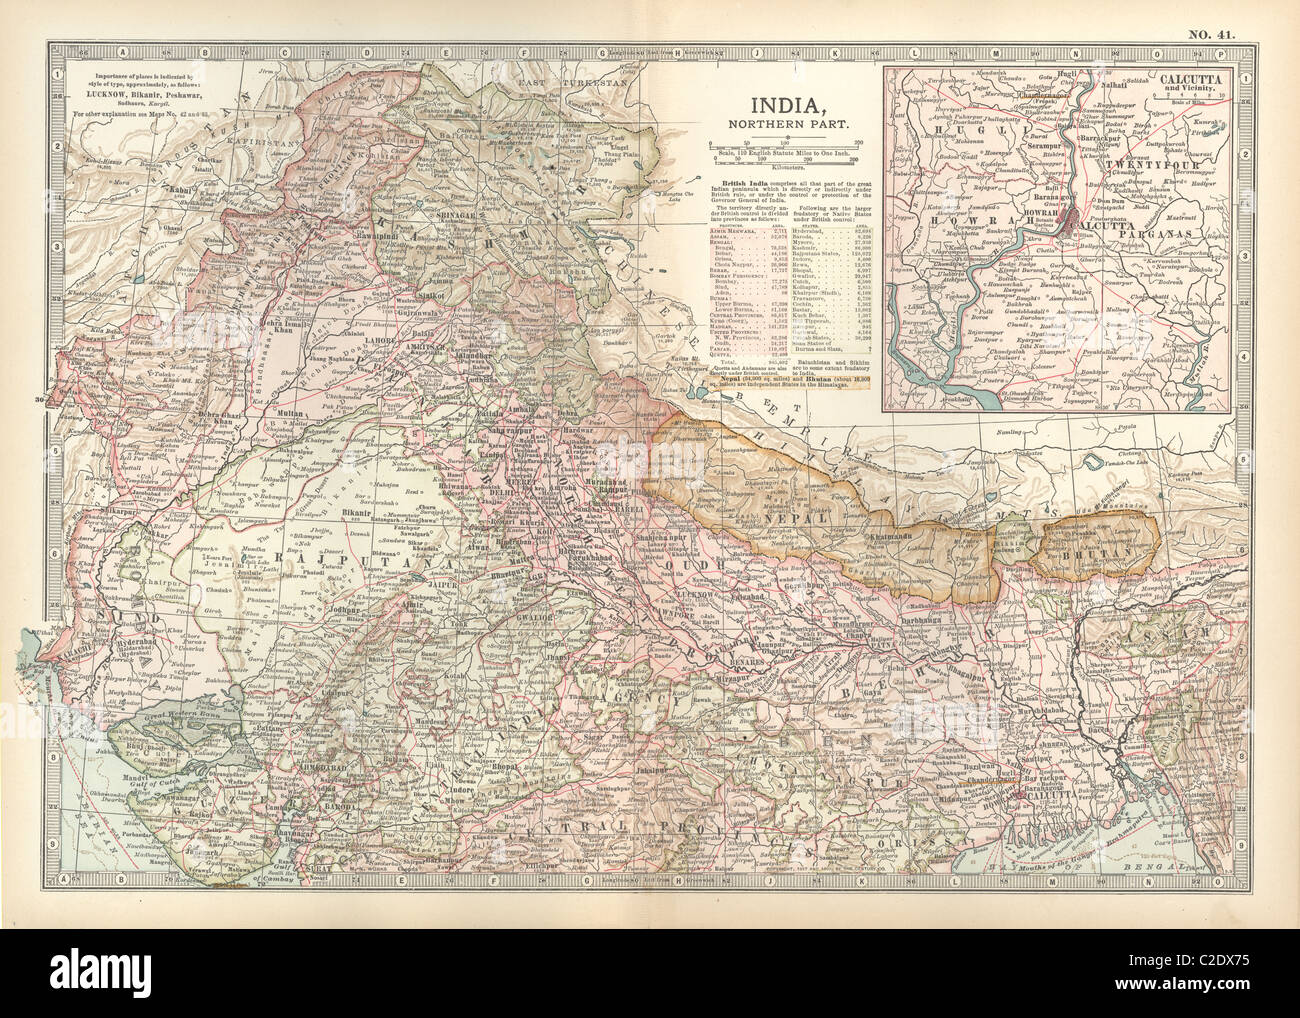 Map of northern India with Calcutta Stock Photo: 35956009 - Alamy Calcutta Map on